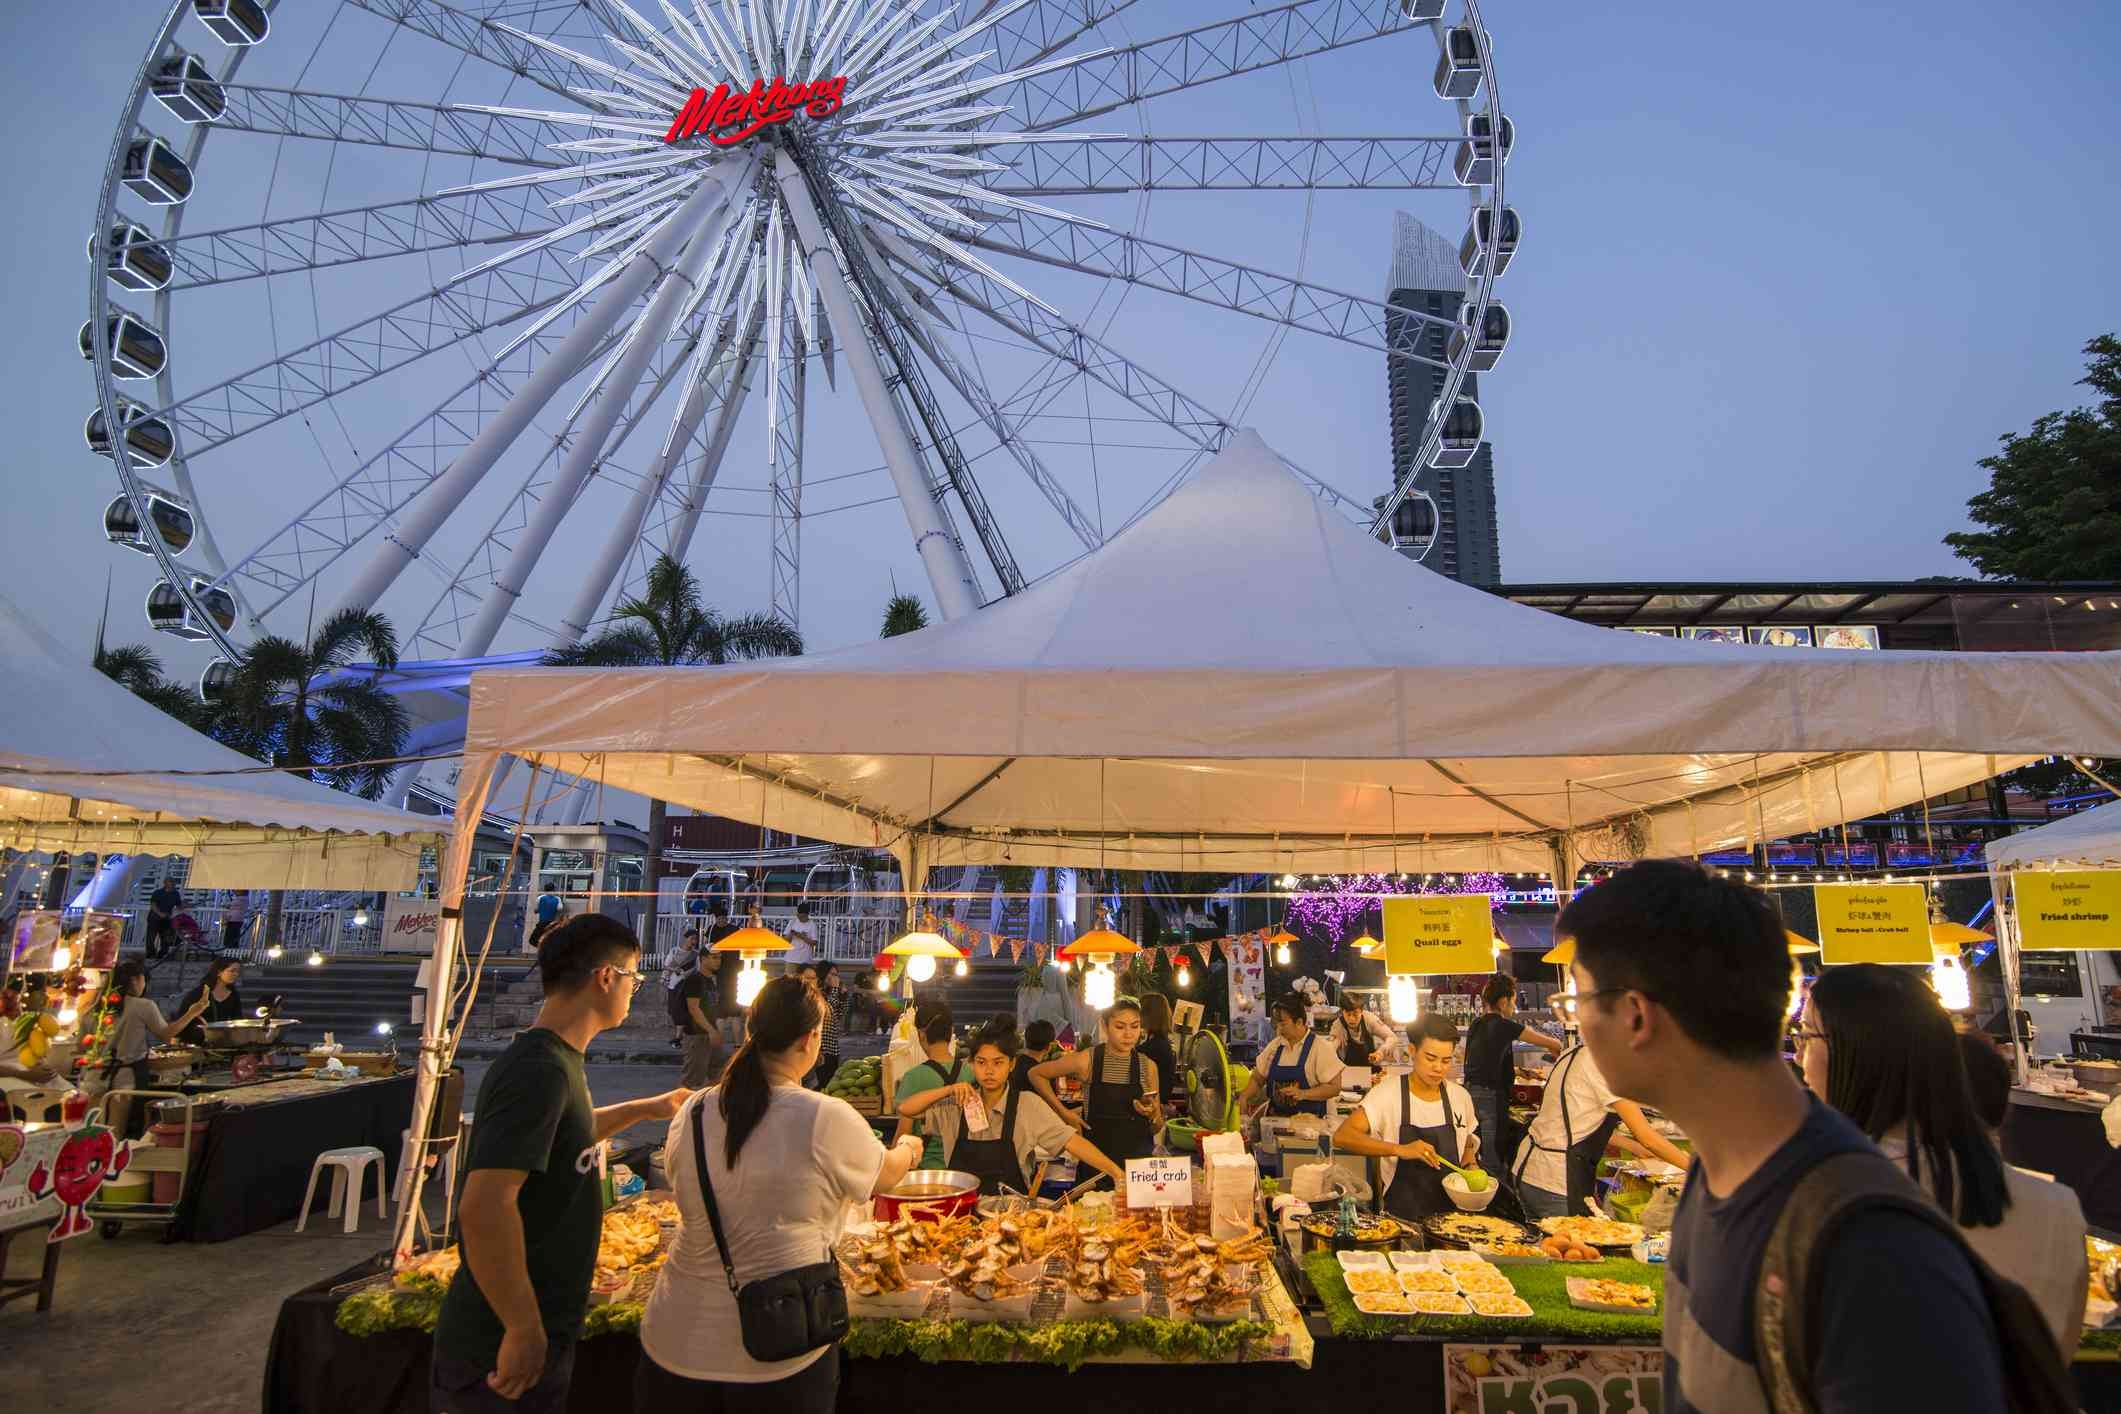 The Ferris Wheel of the Asiatique Riverfront Nightmarket in the city of Bangkok in Thailand